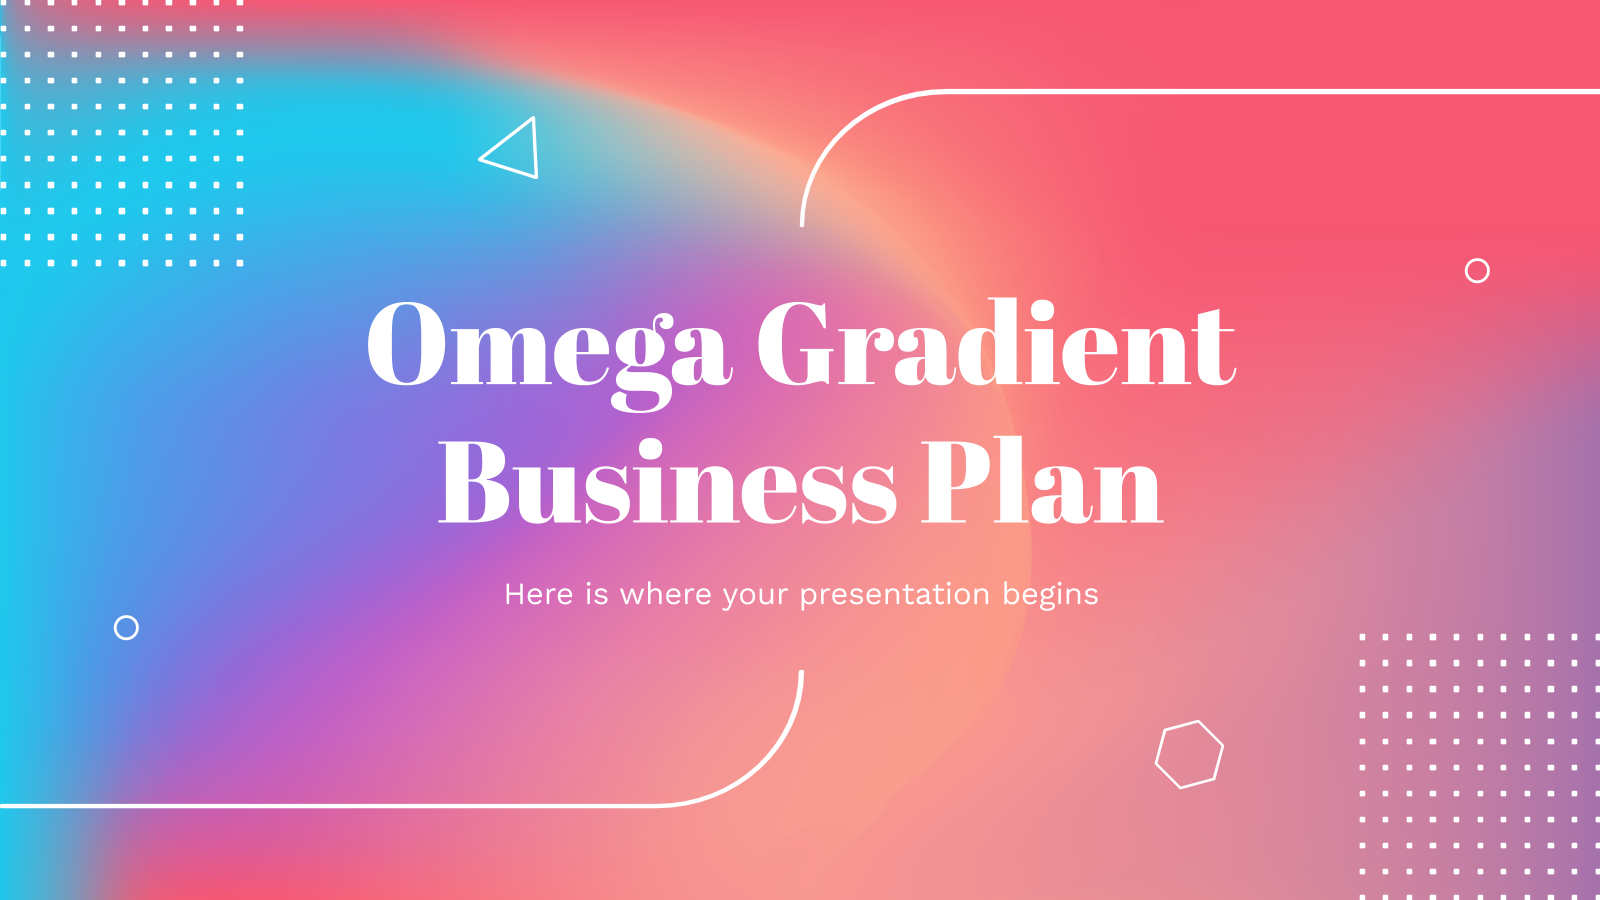 Omega Gradient Business Plan presentation template